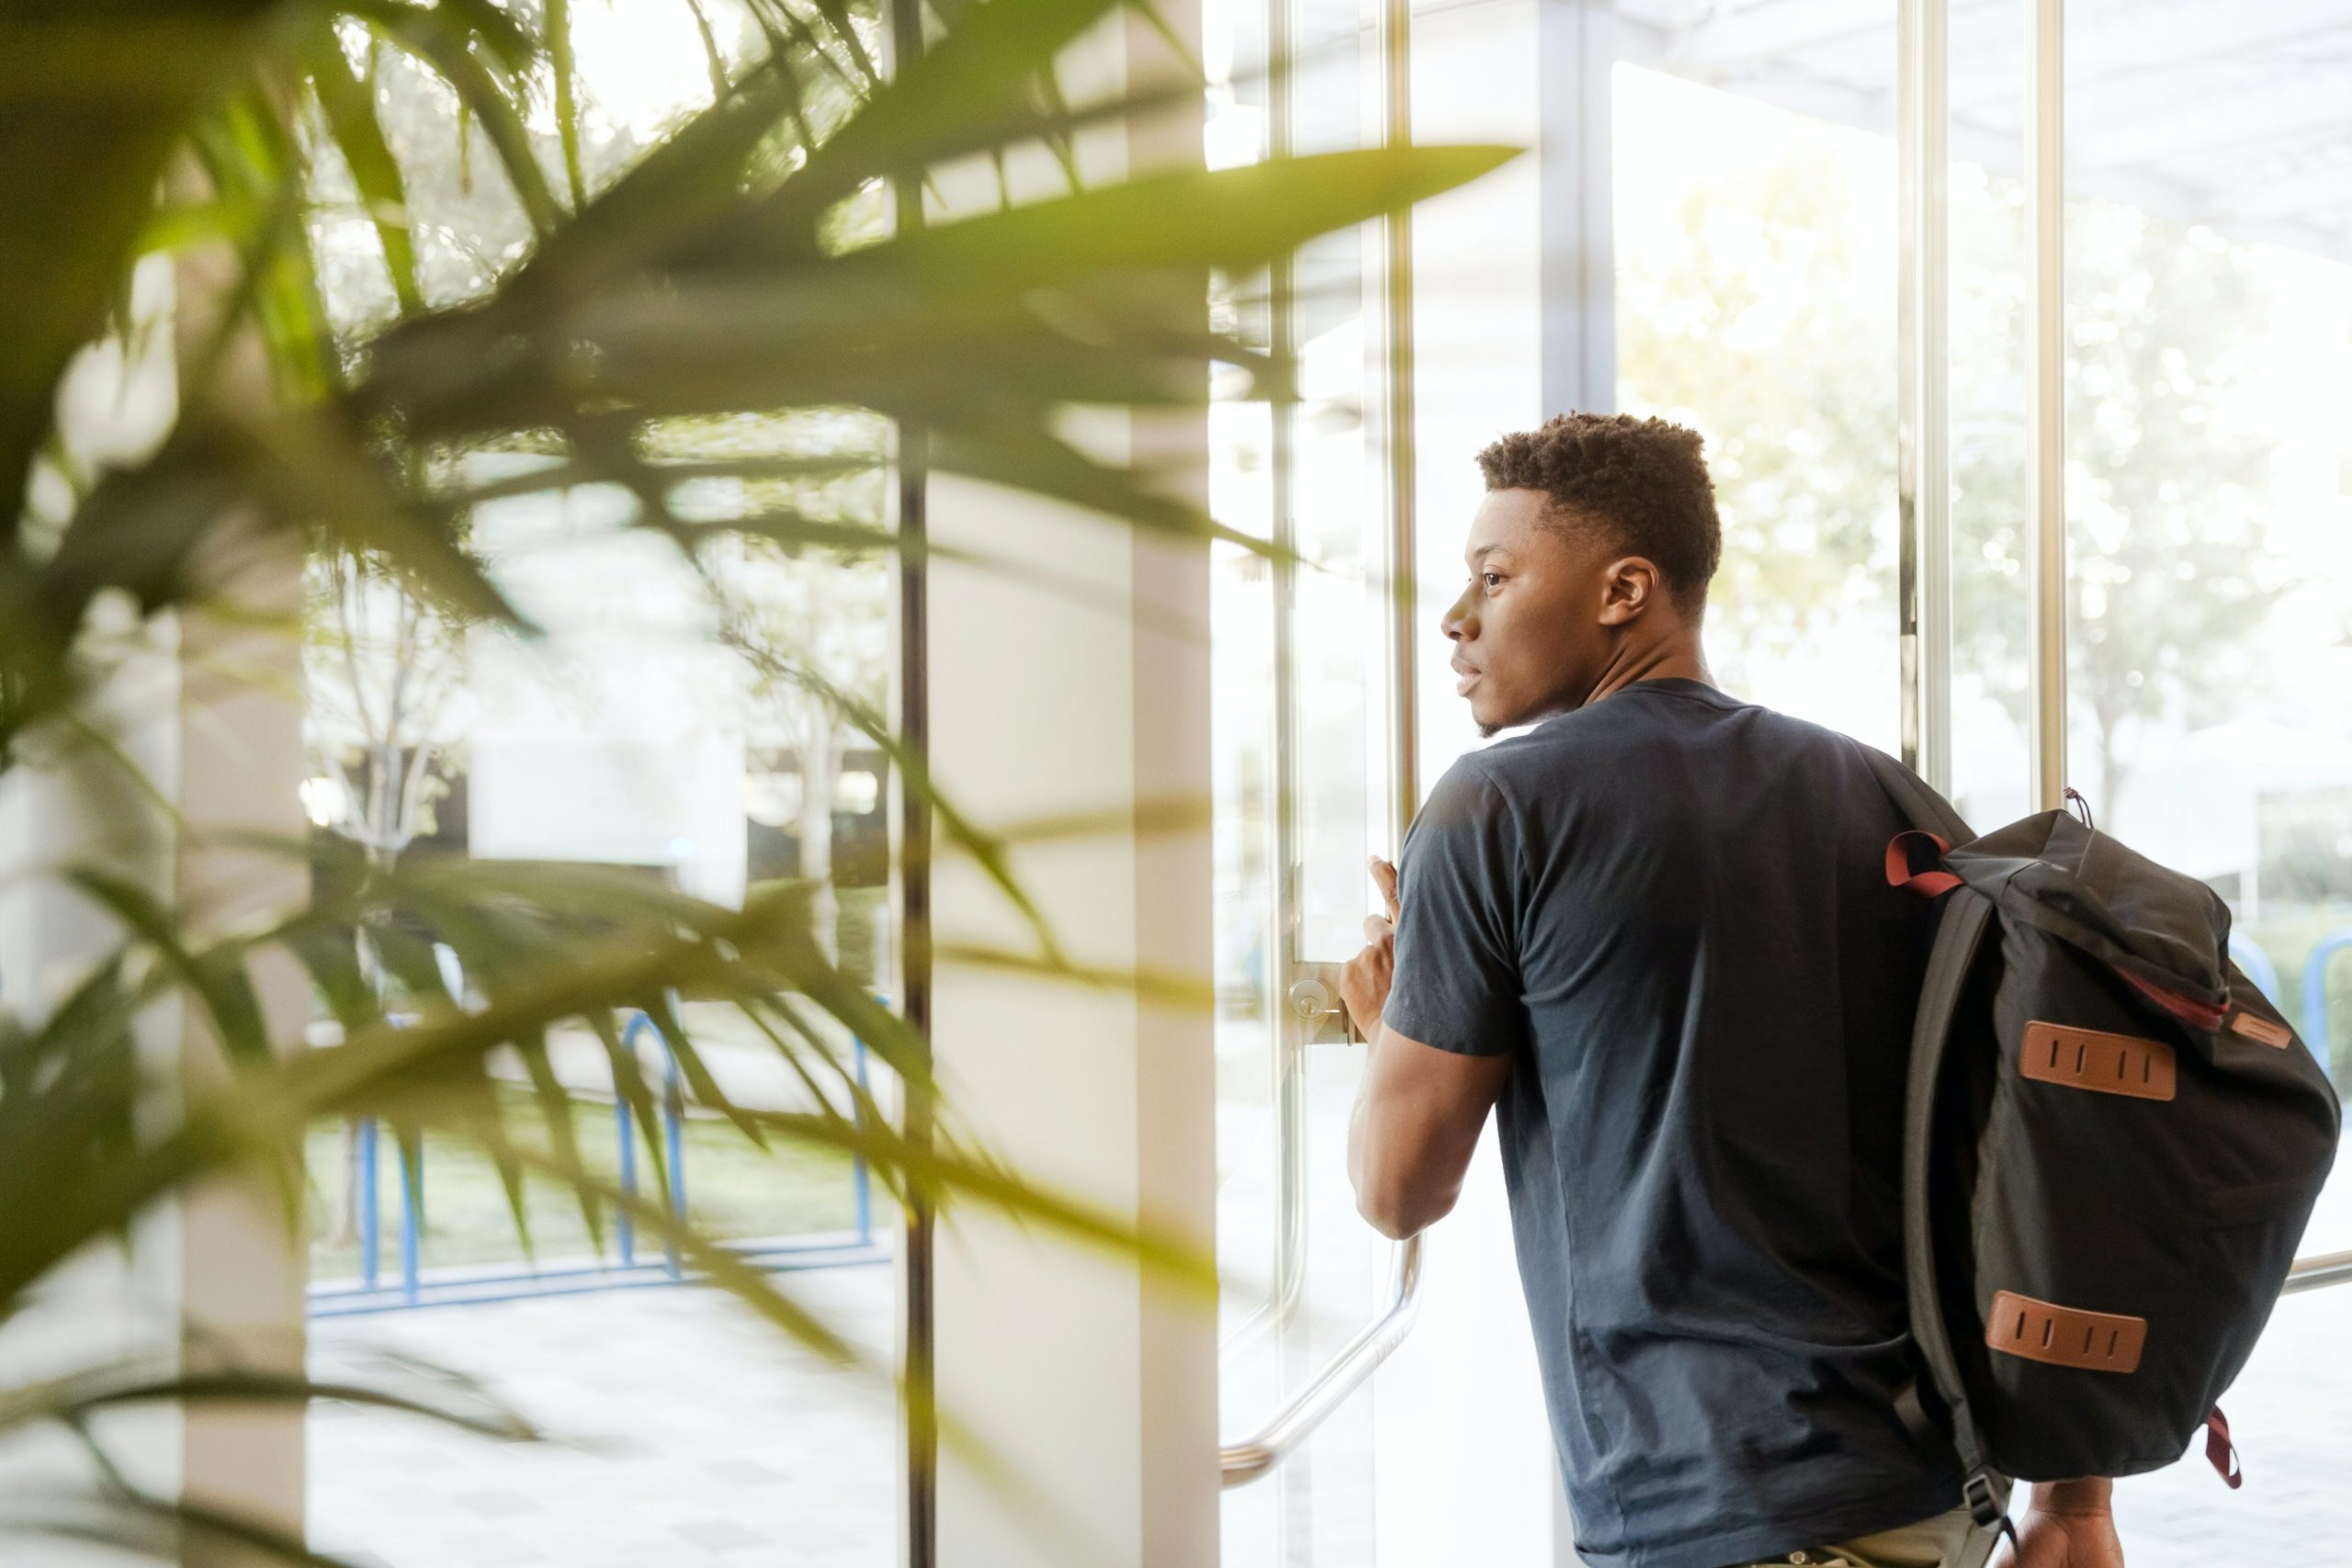 man-looking-outside-window-carrying-black-and-brown-backpack-1251861